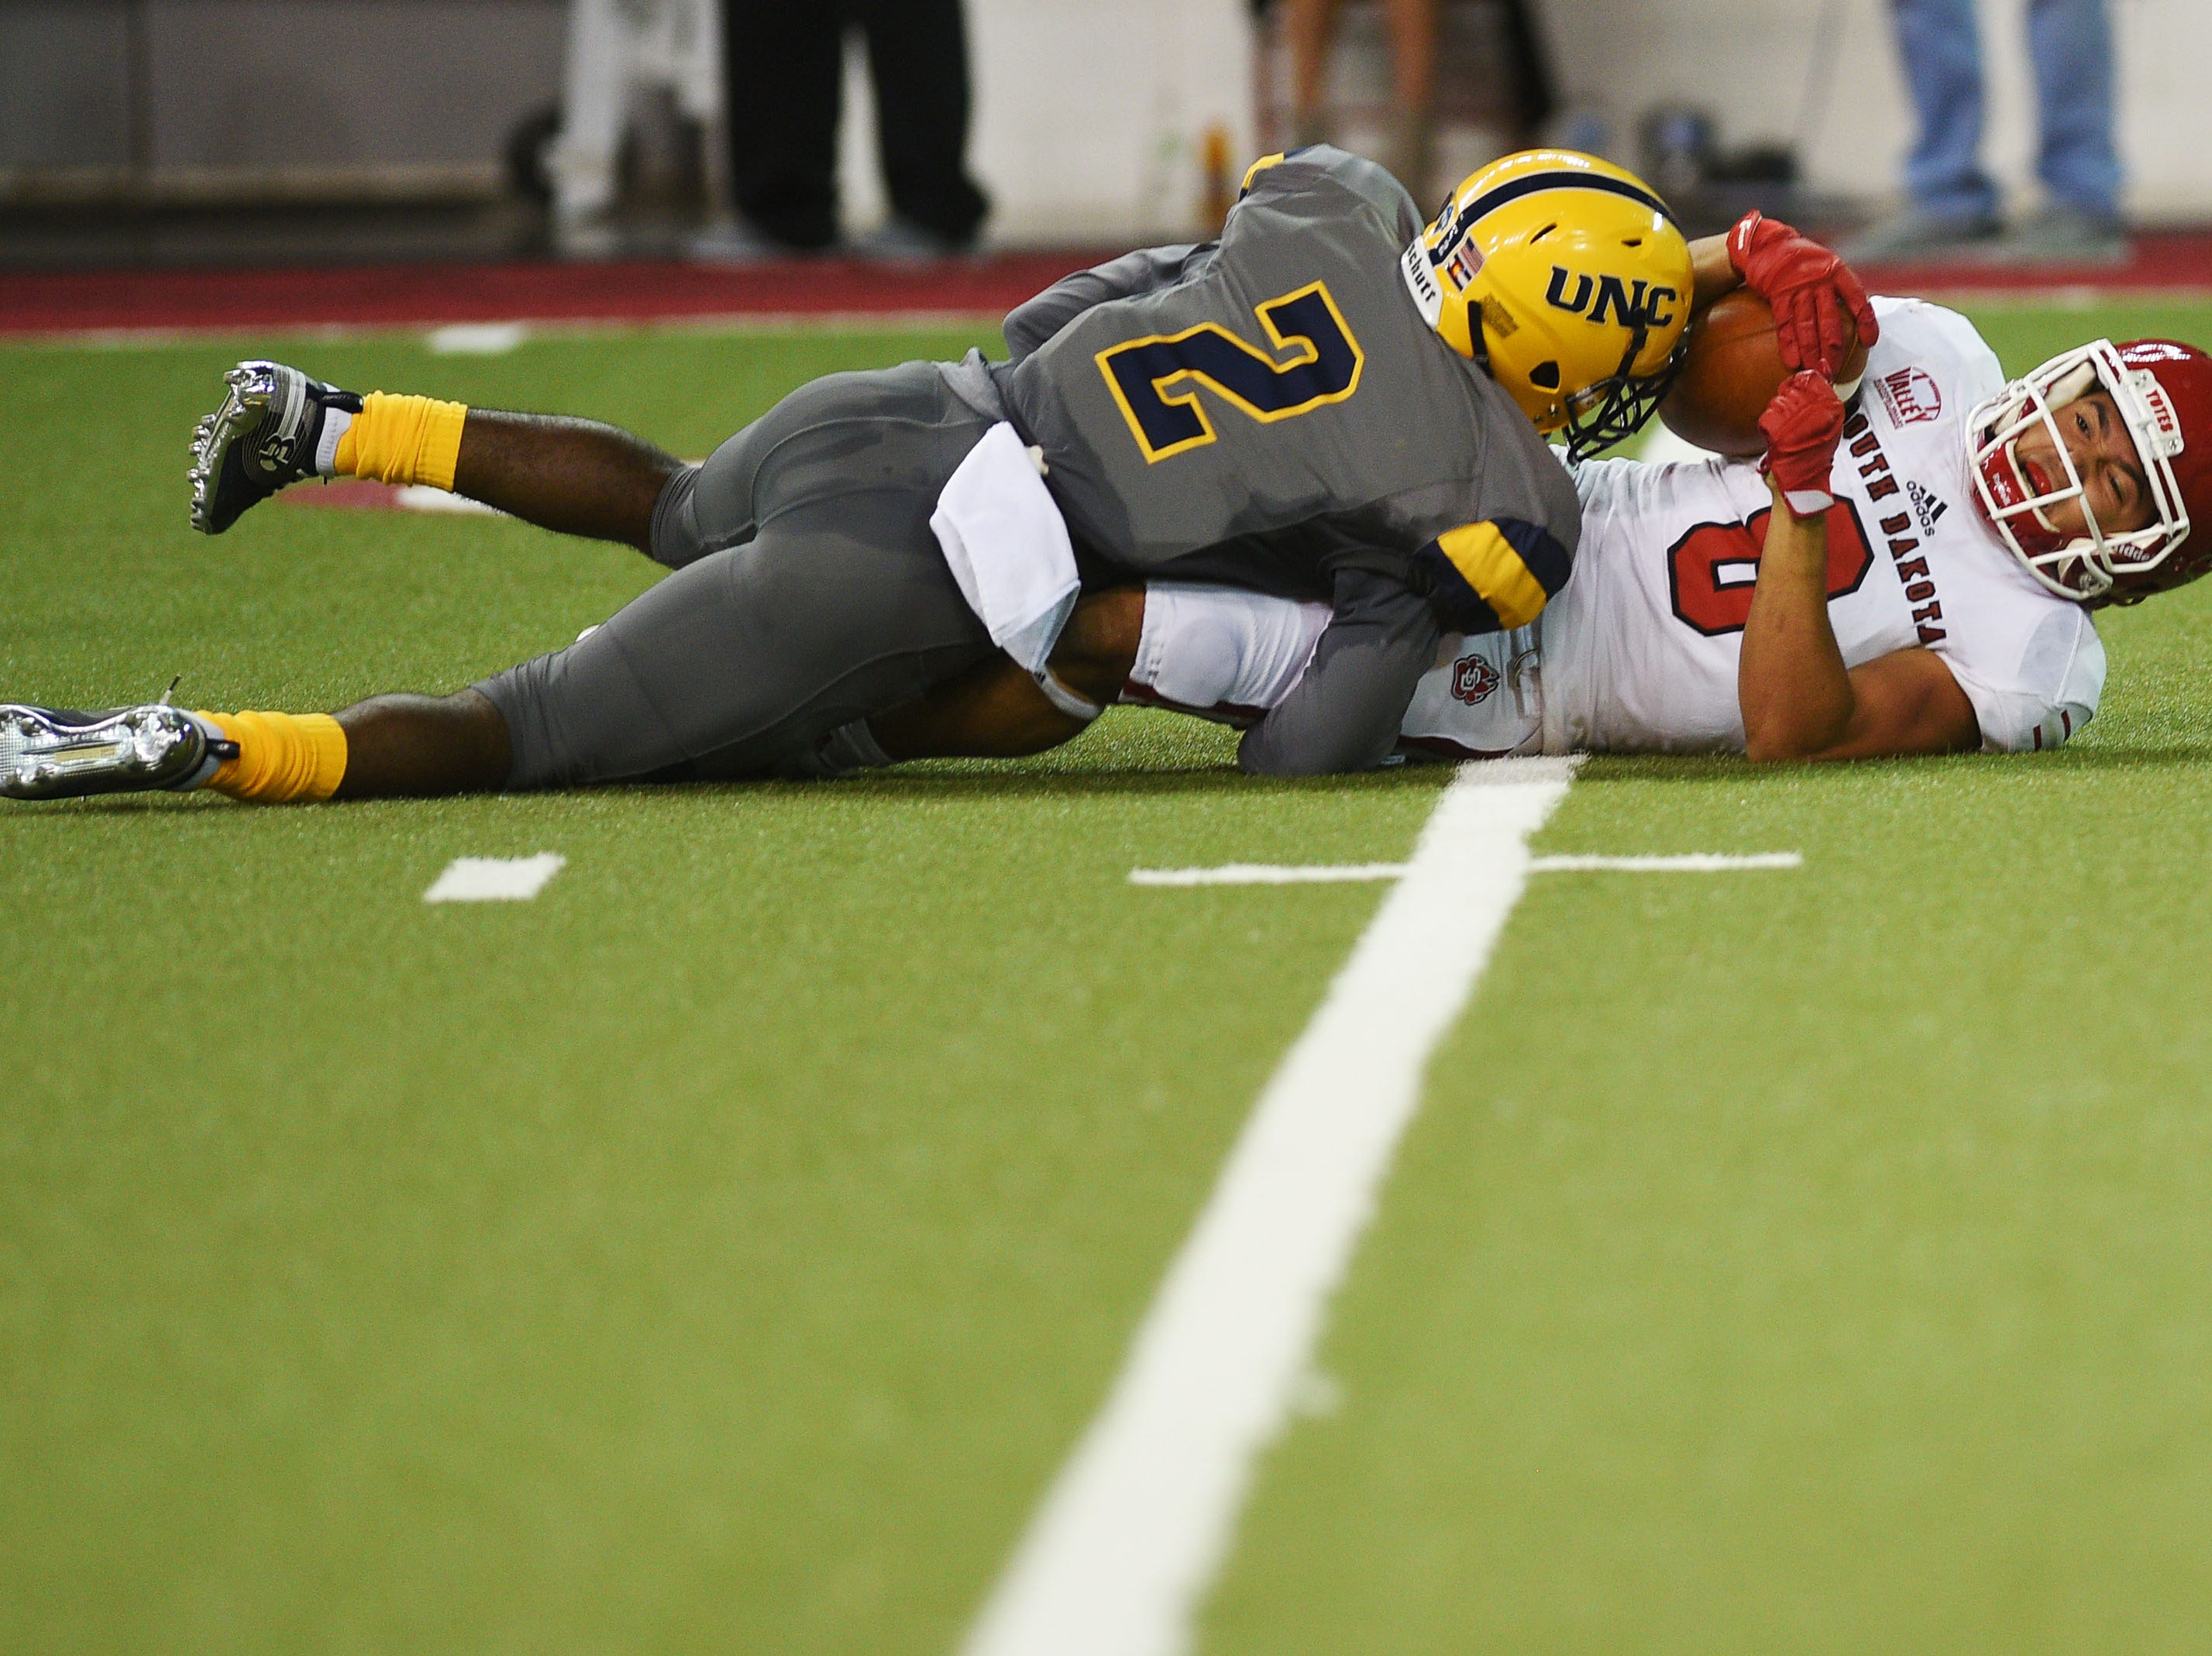 USD's Trystn Ducker is tackled by Northern Colorado's 	Isaiah Swopes during the game Saturday, Sept 8, at the DakotaDome in Vermillion.